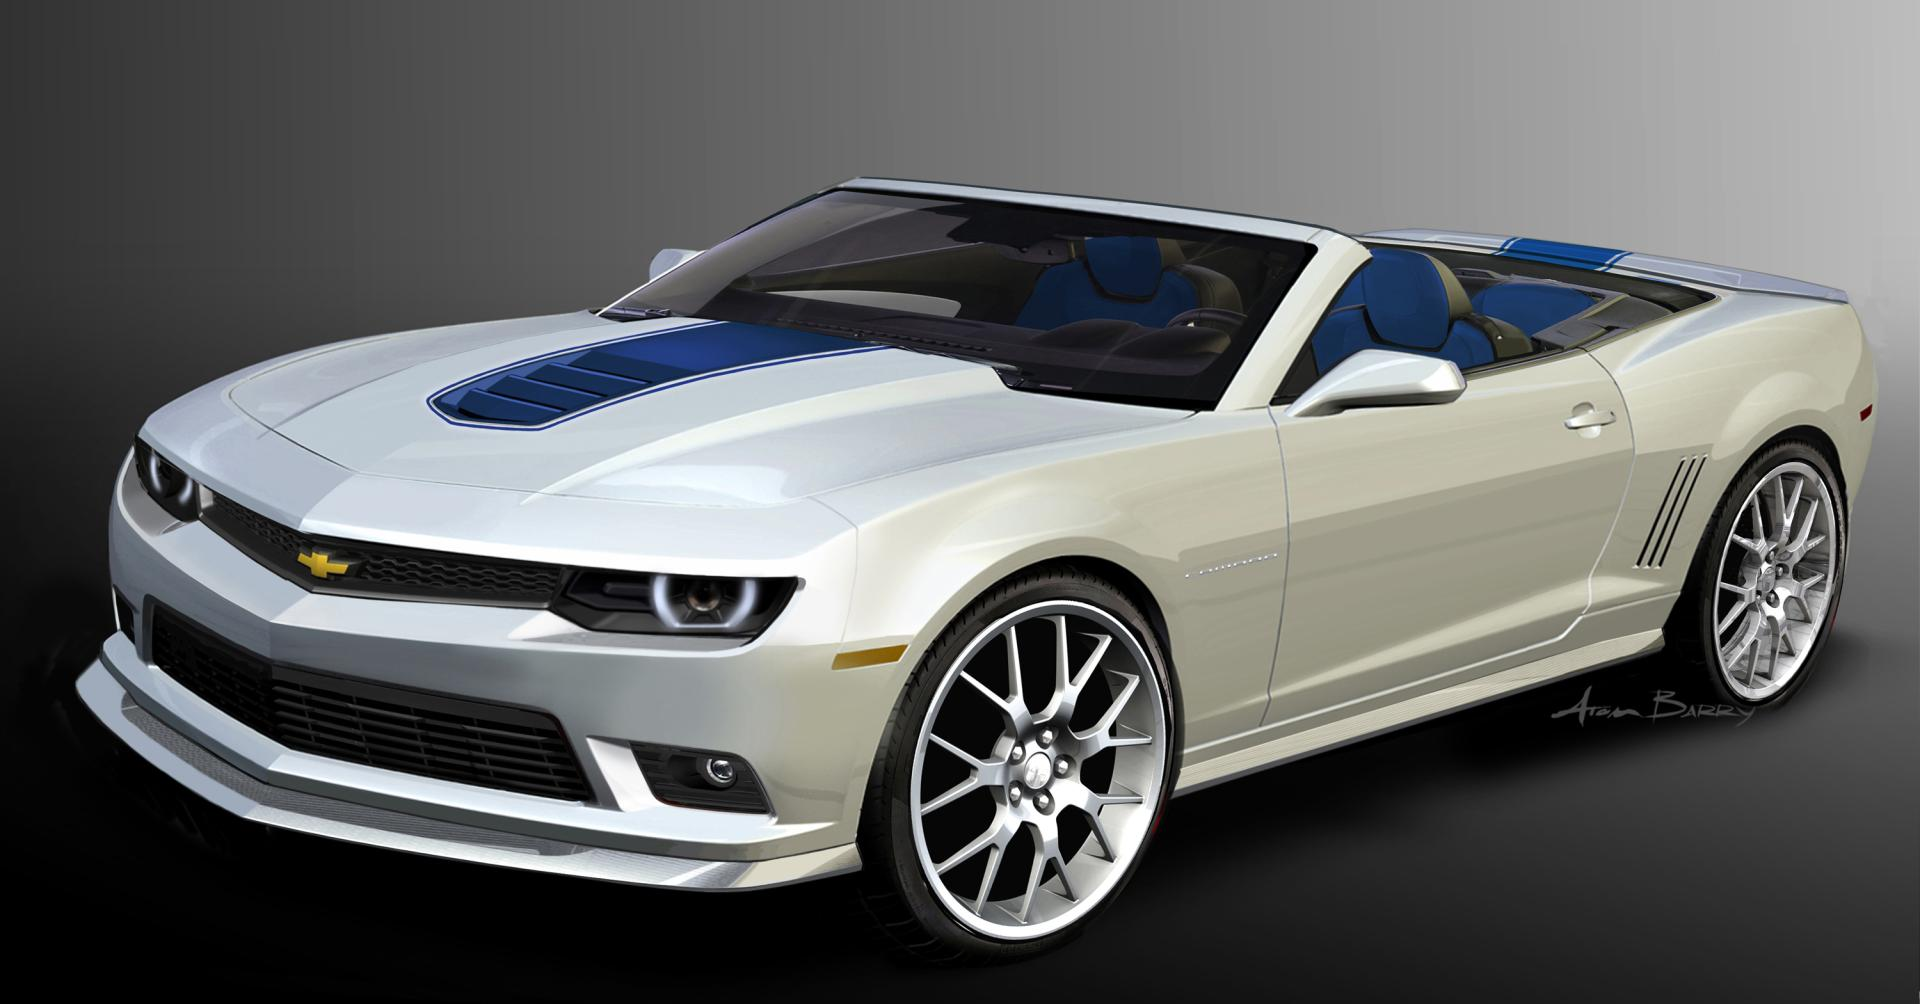 2013 Chevrolet Camaro Spring Special Edition News and Information